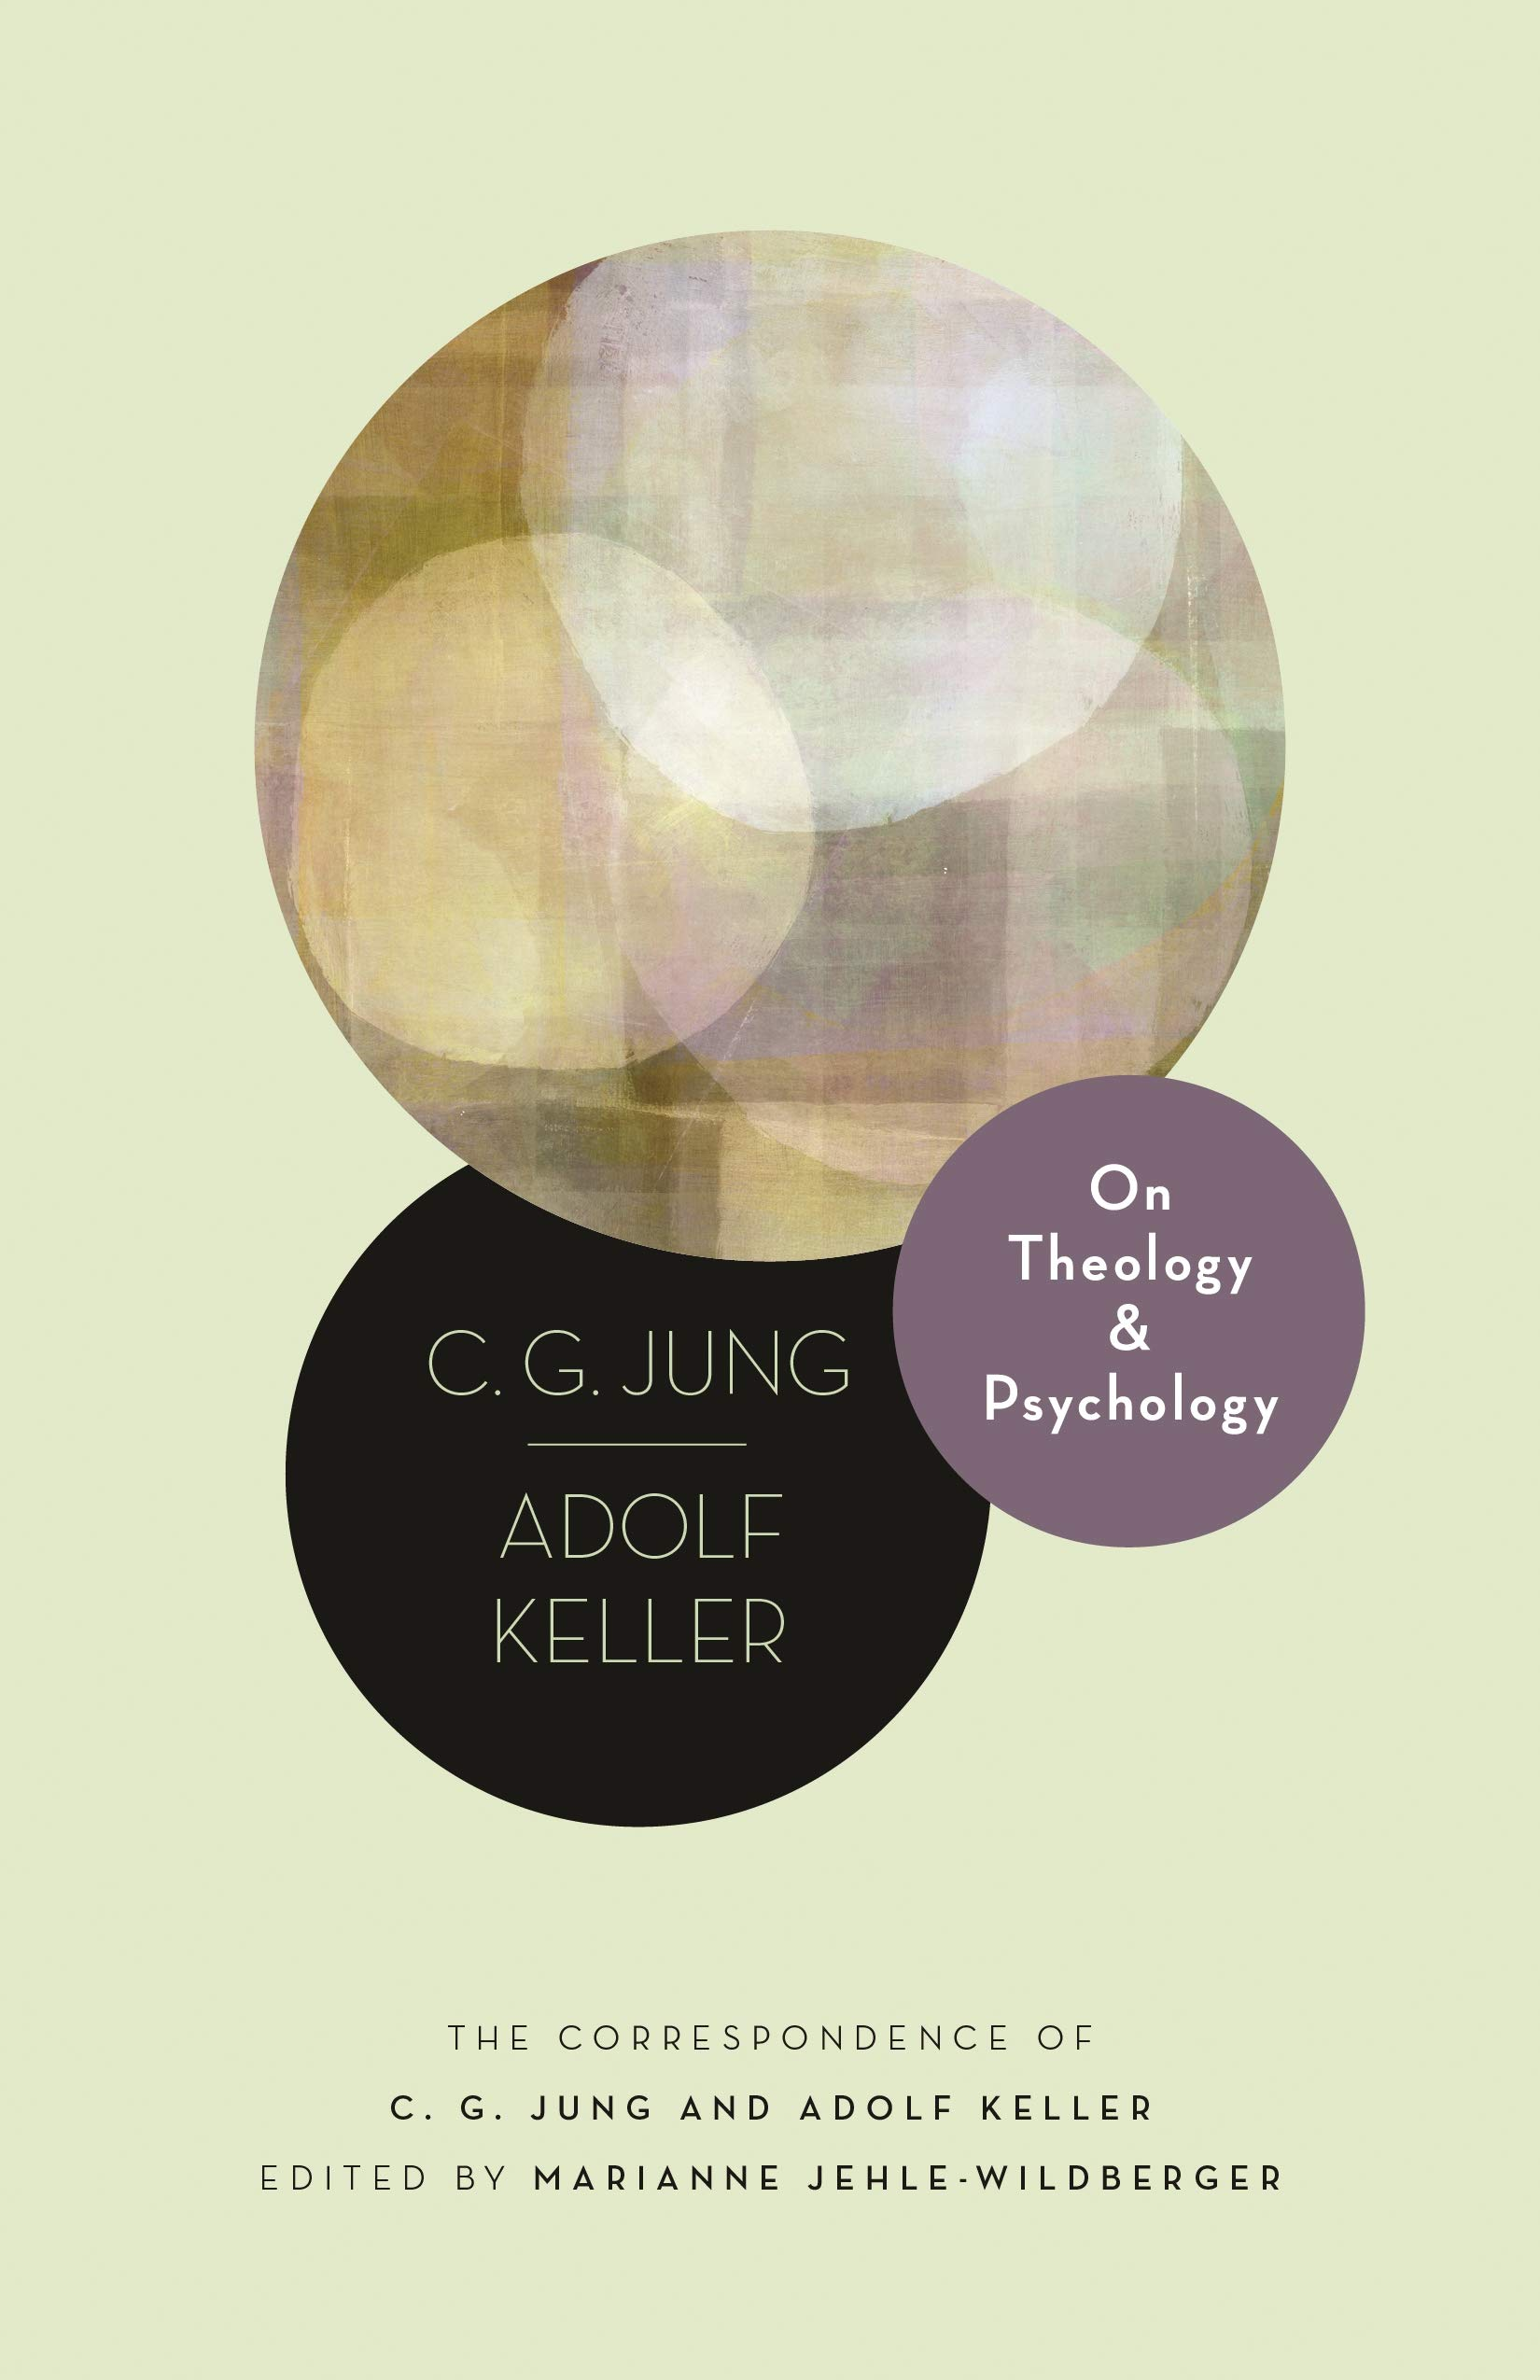 On Theology And Psychology  The Correspondence Of C. G. Jung And Adolf Keller  Philemon Foundation Band 19